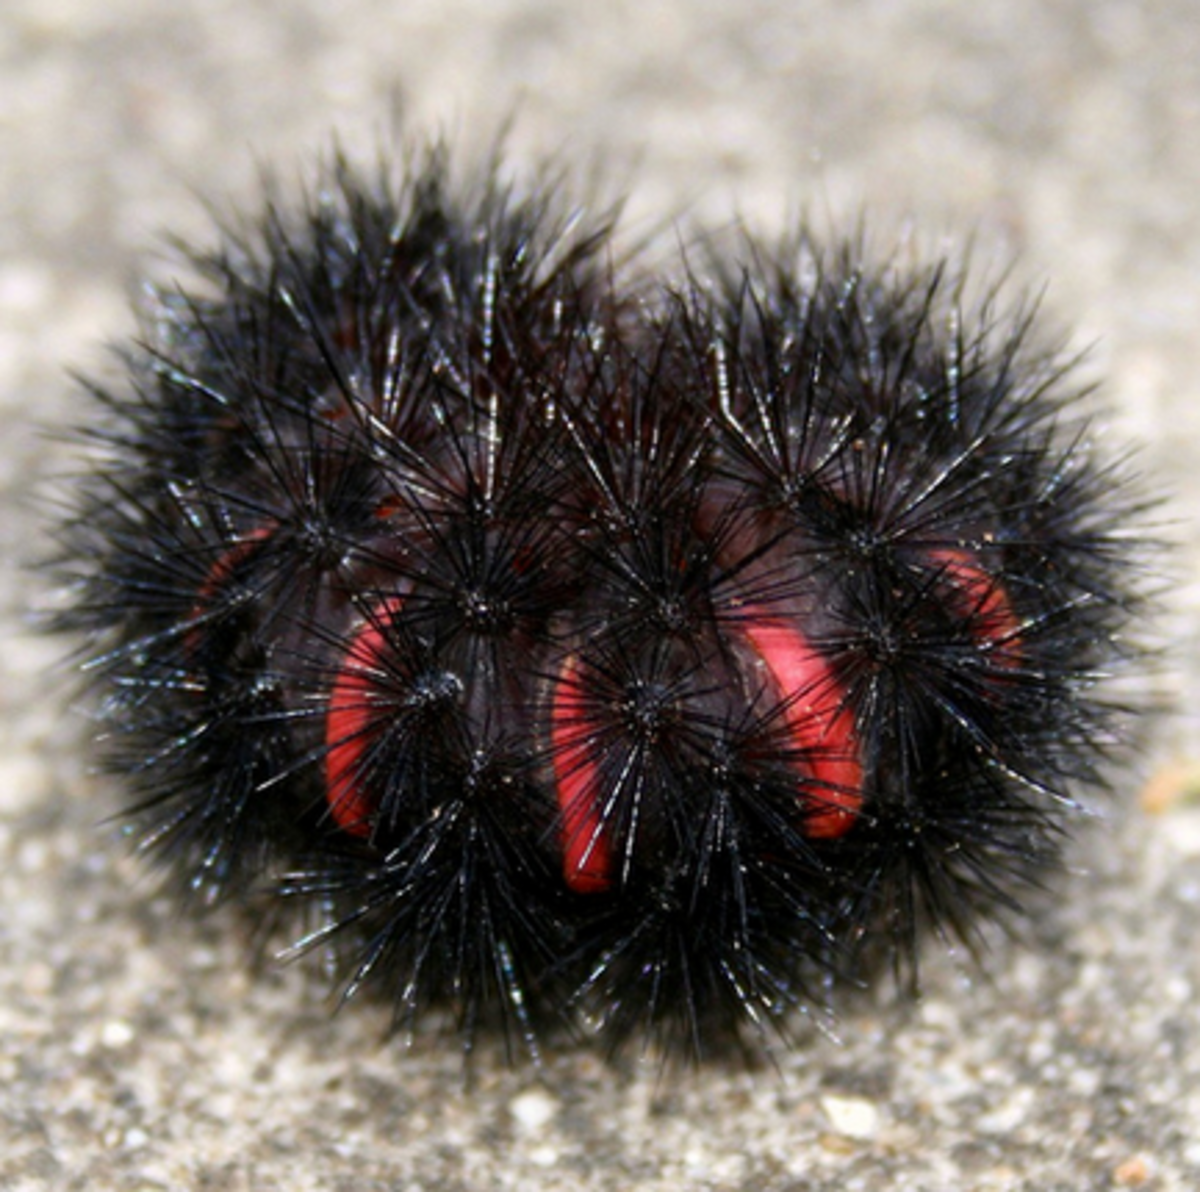 When giant leopard moth caterpillars curl up, they look remarkably like sea urchins!